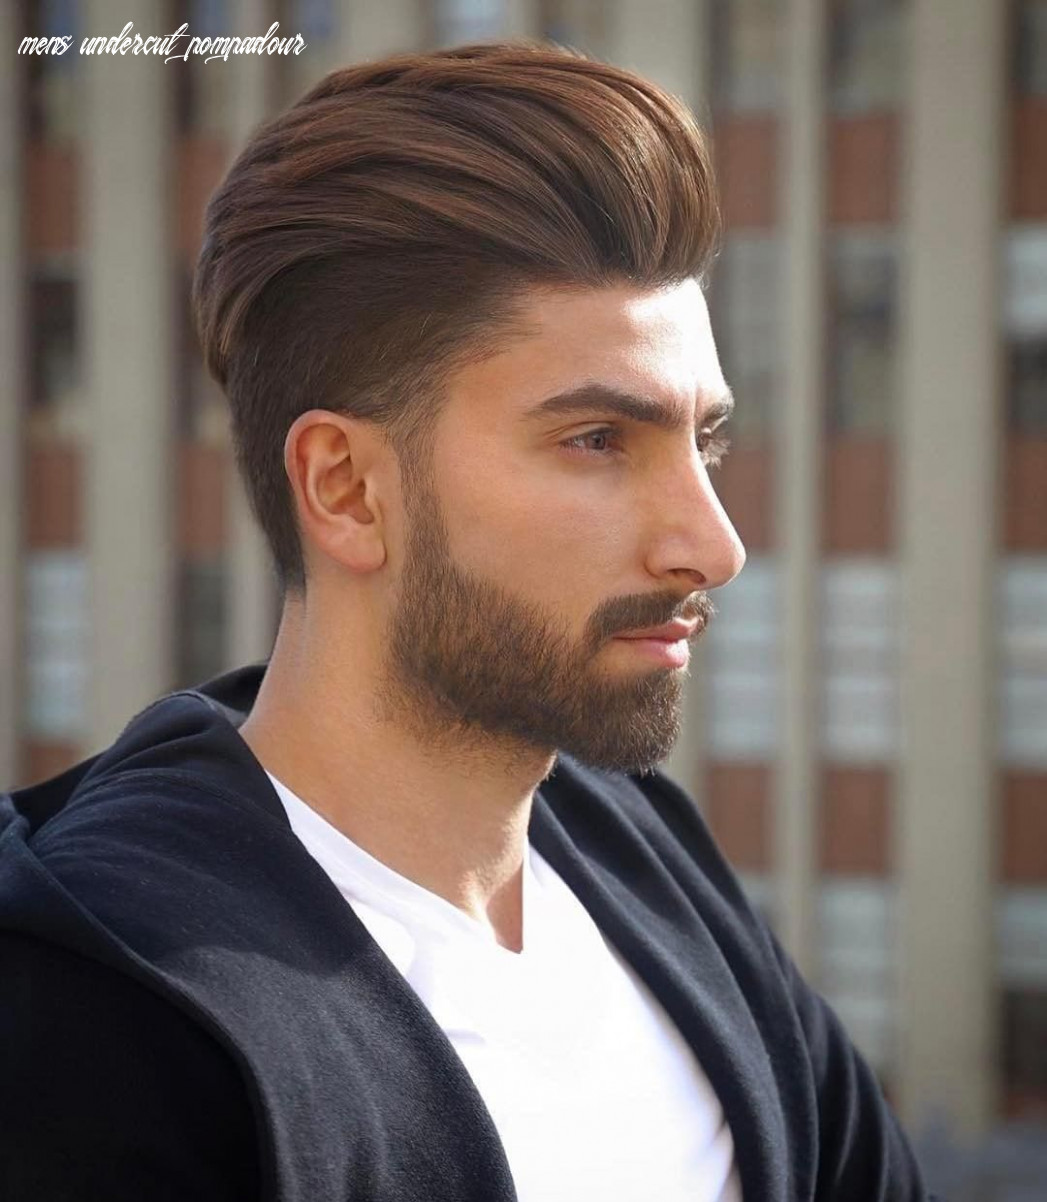 Get this hairstyle undercut with a high volume backcombed